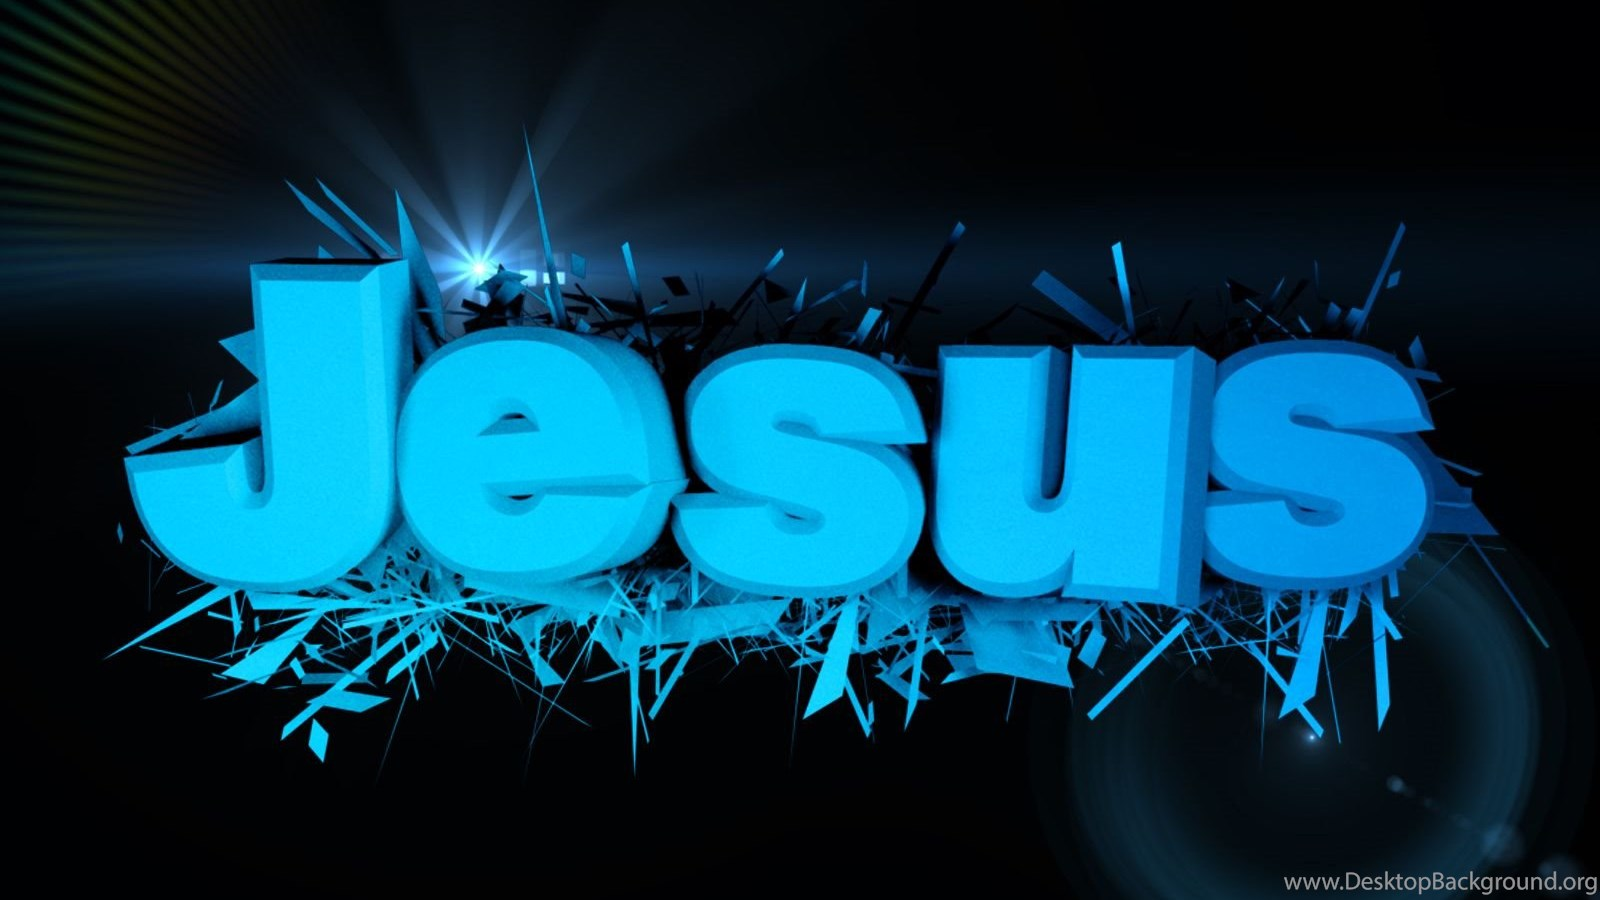 3d Jesus Wallpapers Hd Wallpapers And Pictures Desktop Background